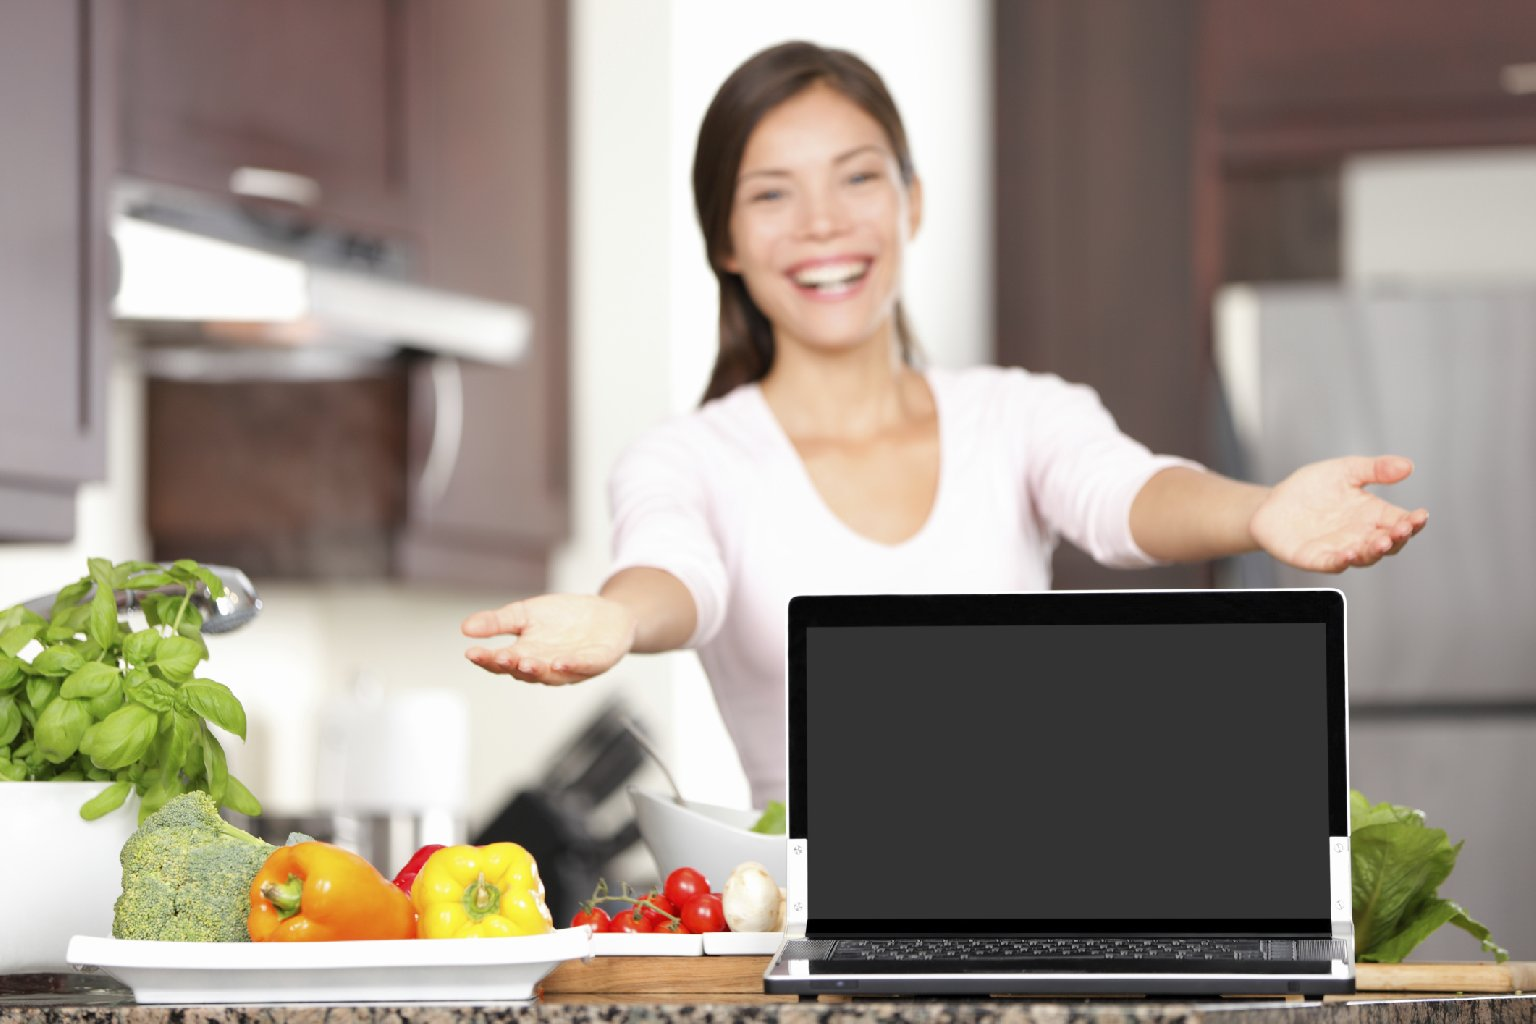 These websites can provide some places to purchase handy items for your kitchen. Photo: Thinkstock